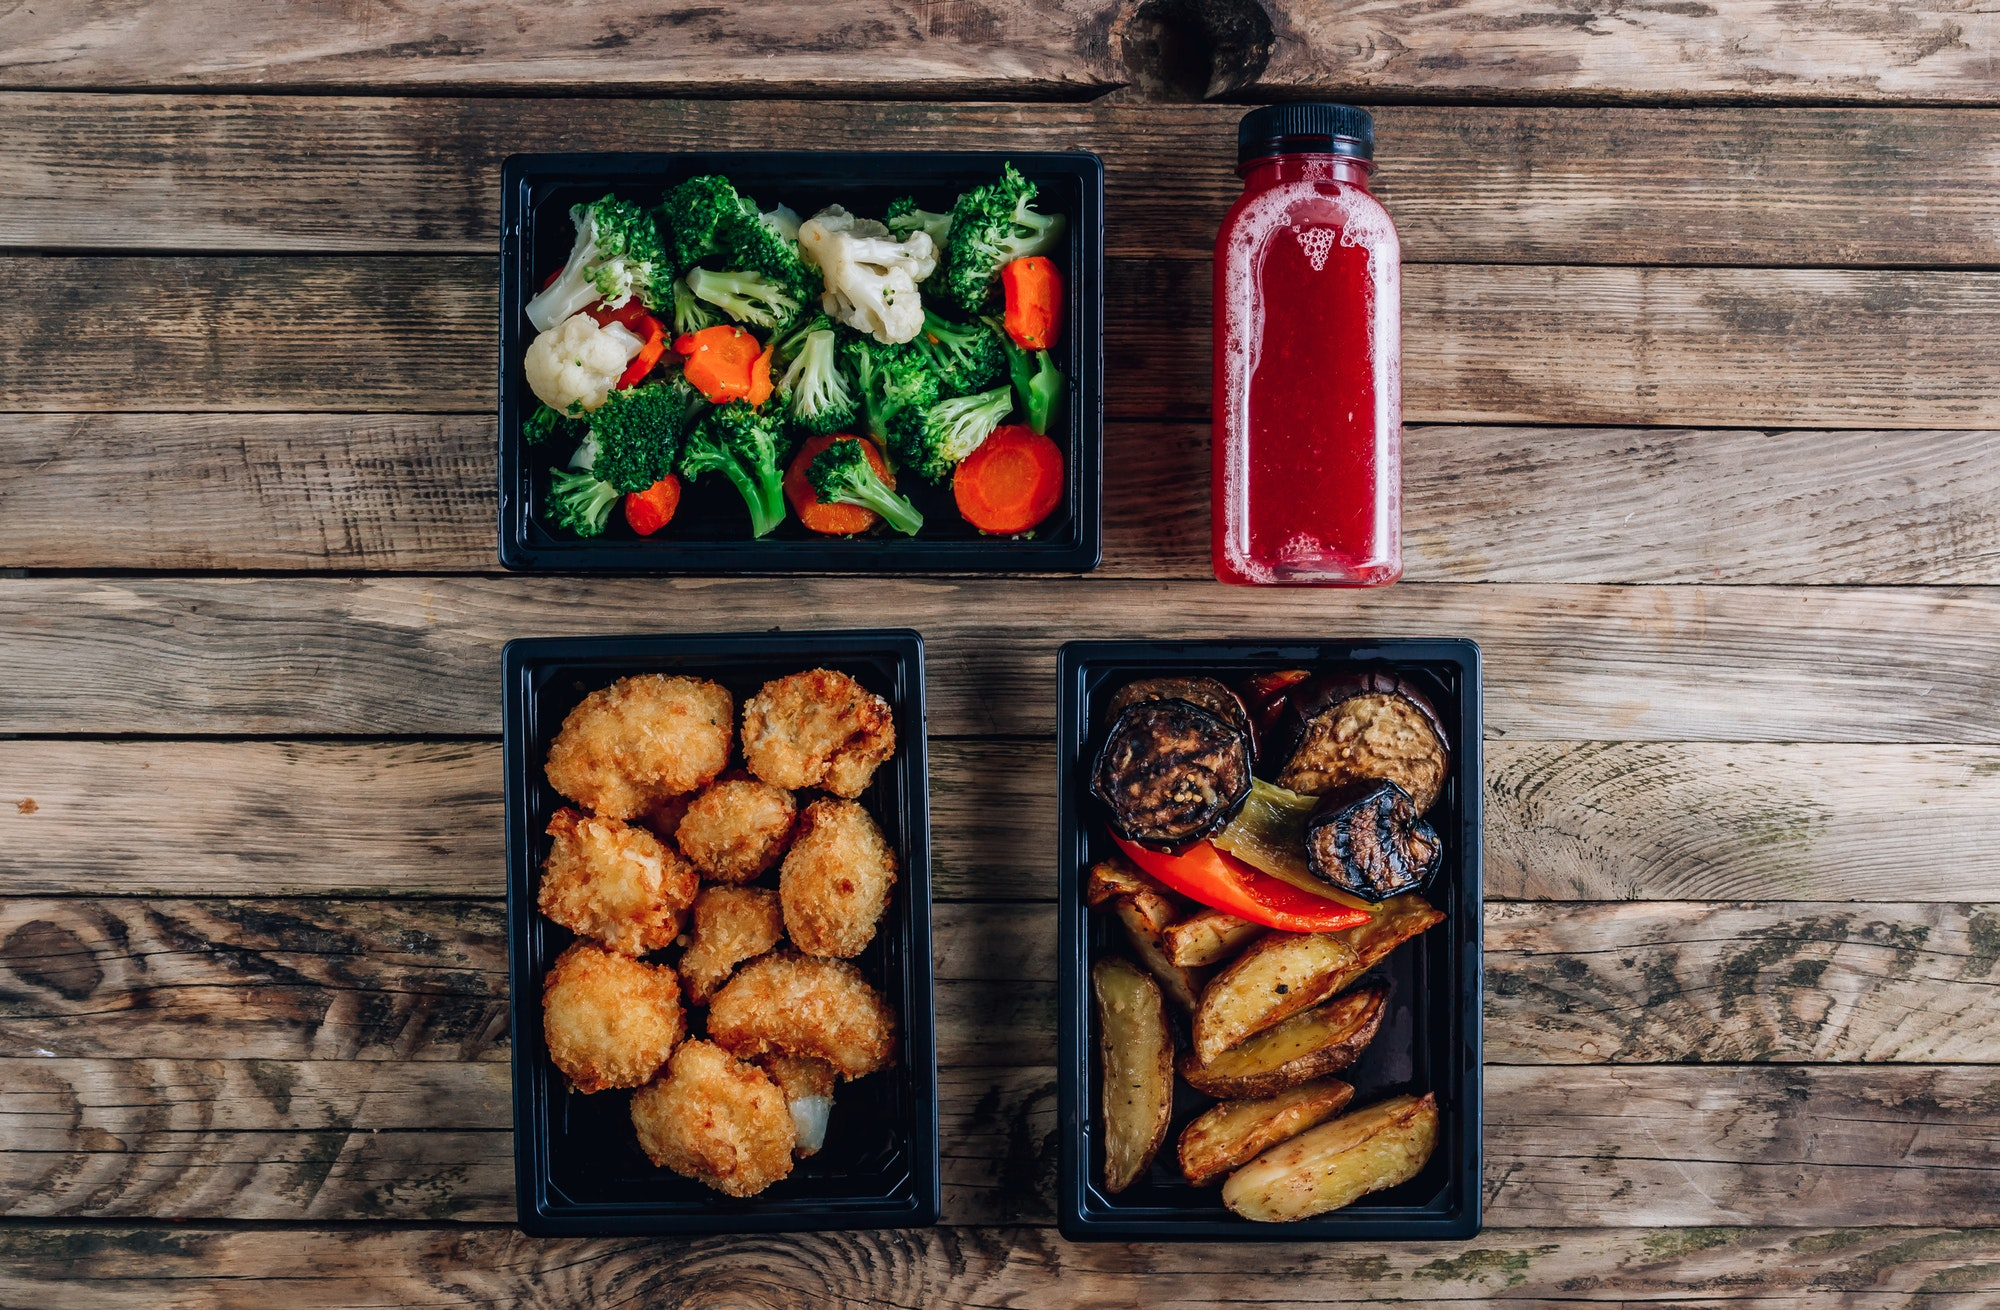 Office food delivery takeout lunch boxes containers